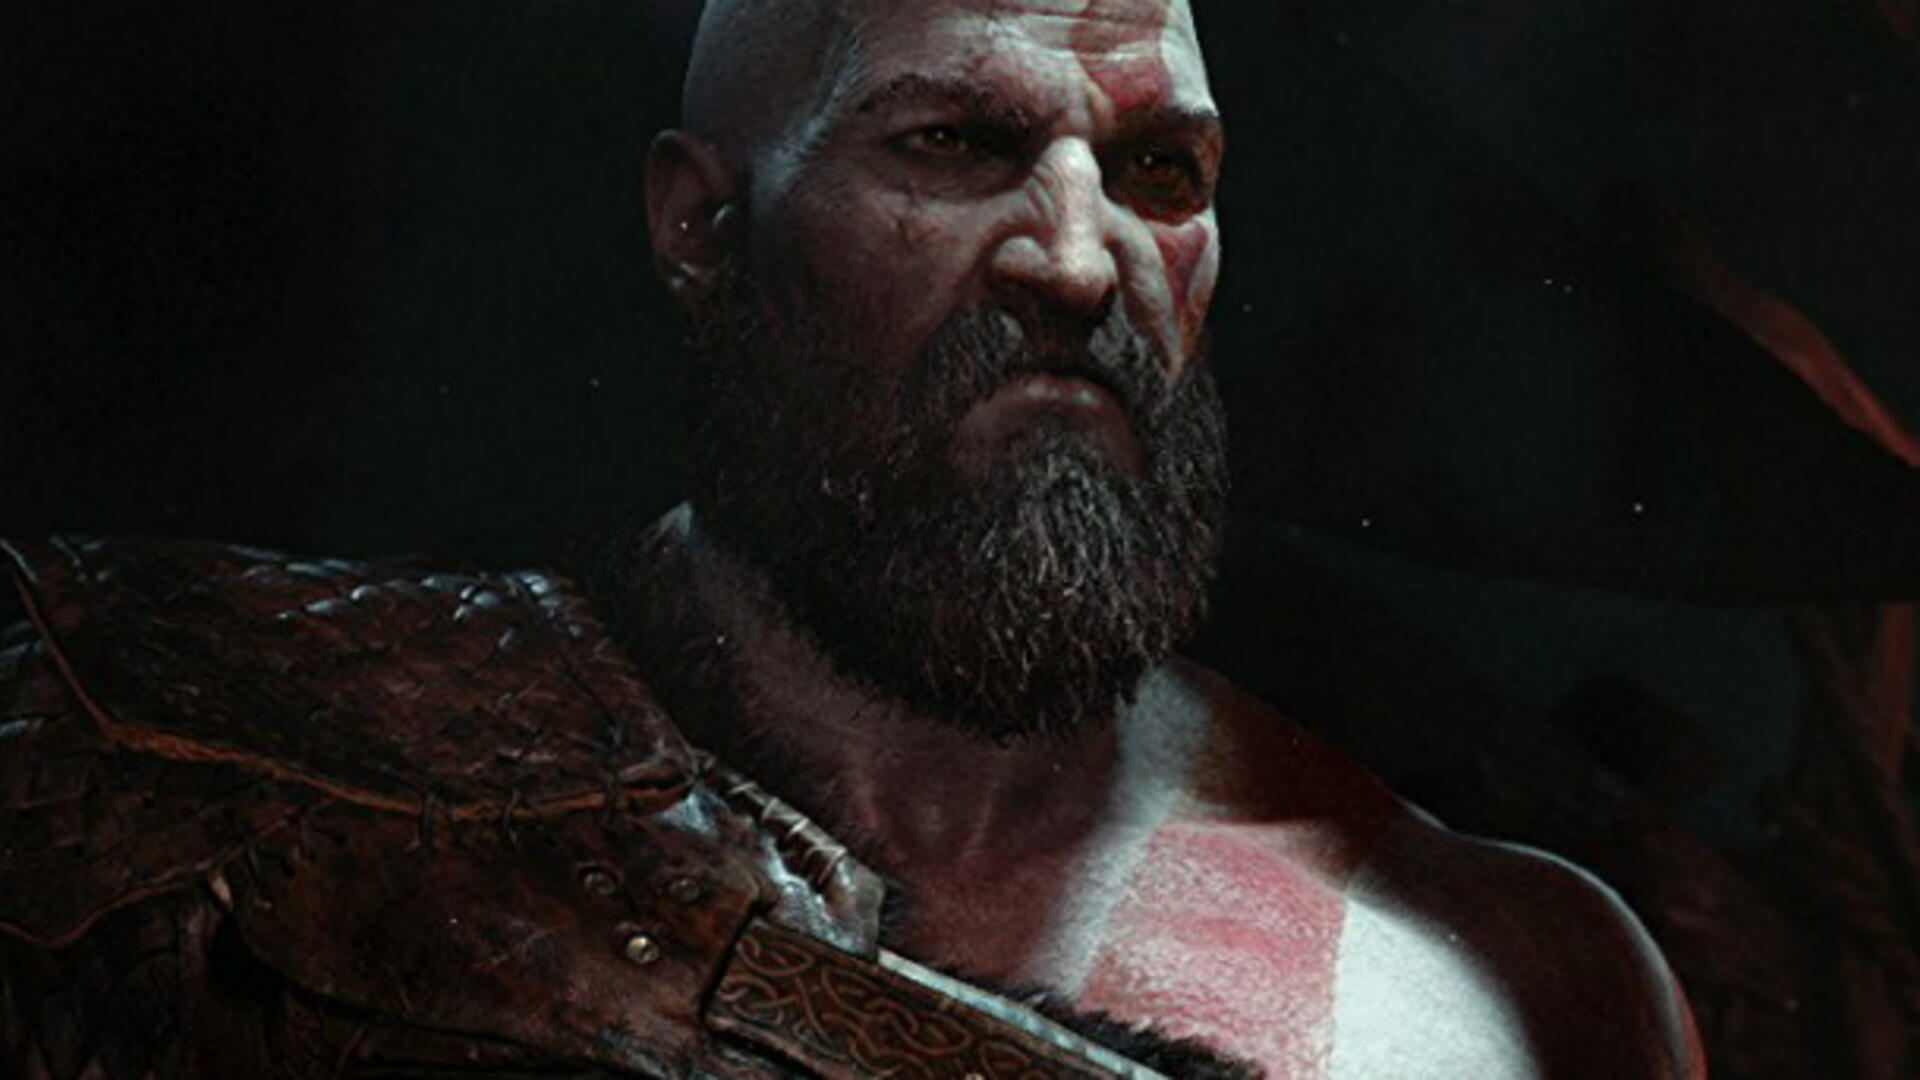 God of War Has No Plans for a DLC Expansion at the Moment, Director Says